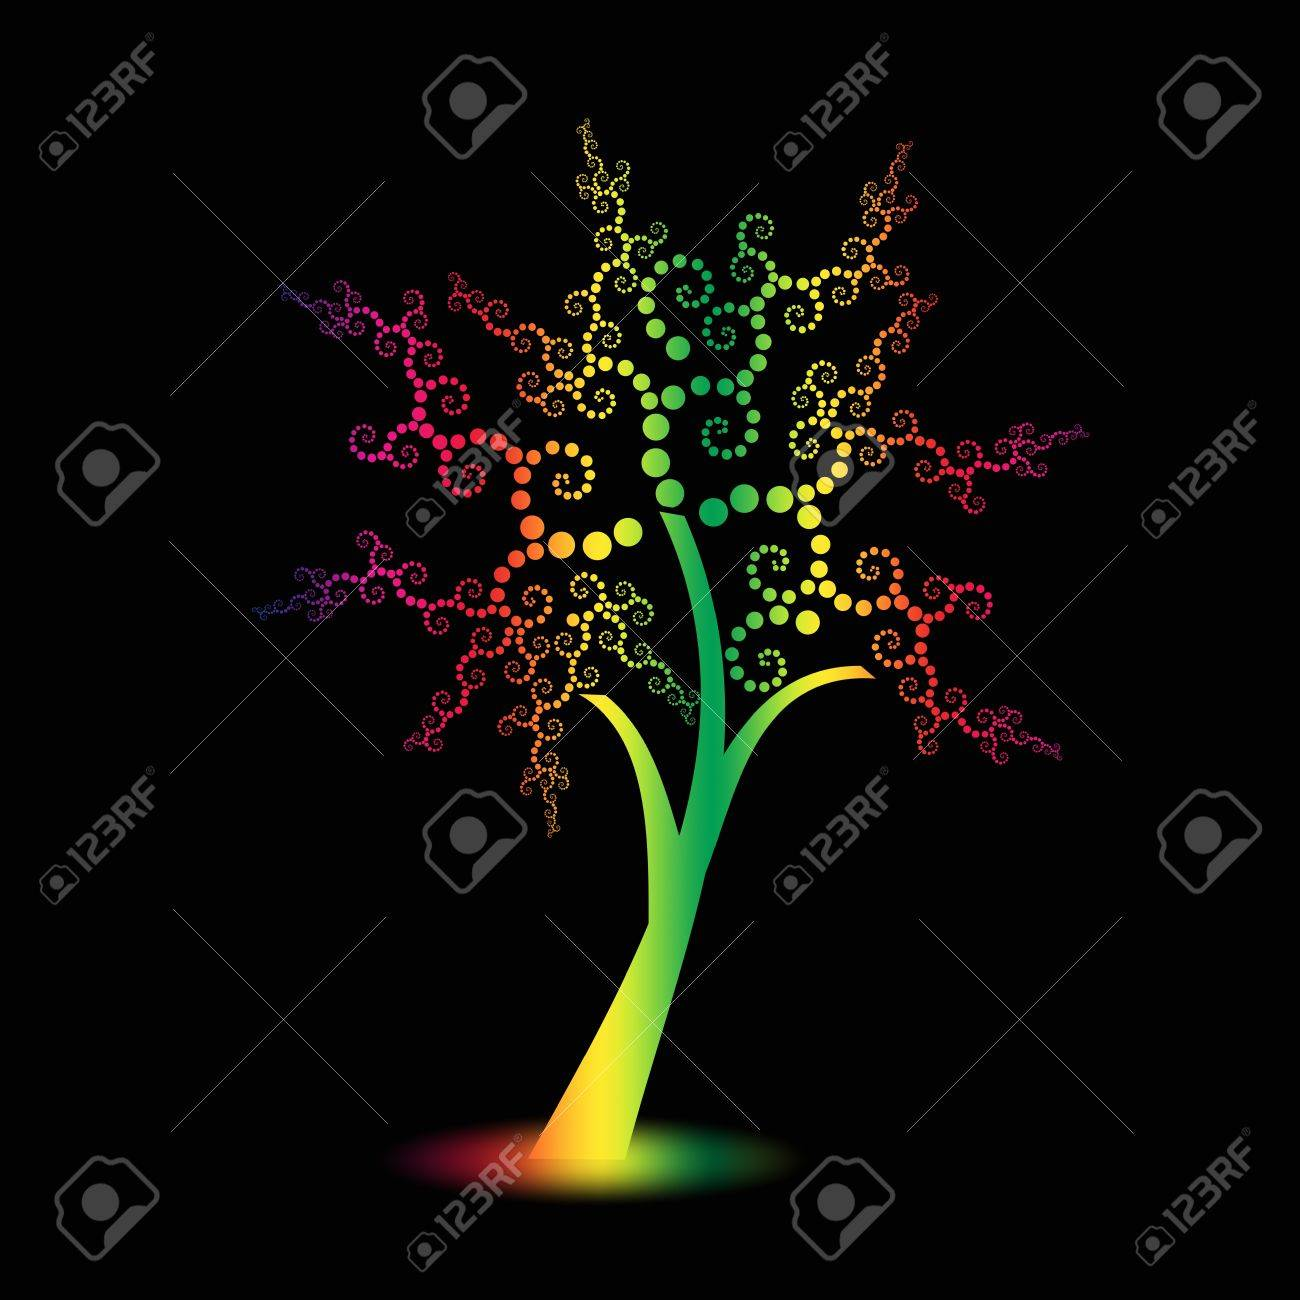 Colorful art trees with polka dots isolated on black background Stock Vector - 10025878